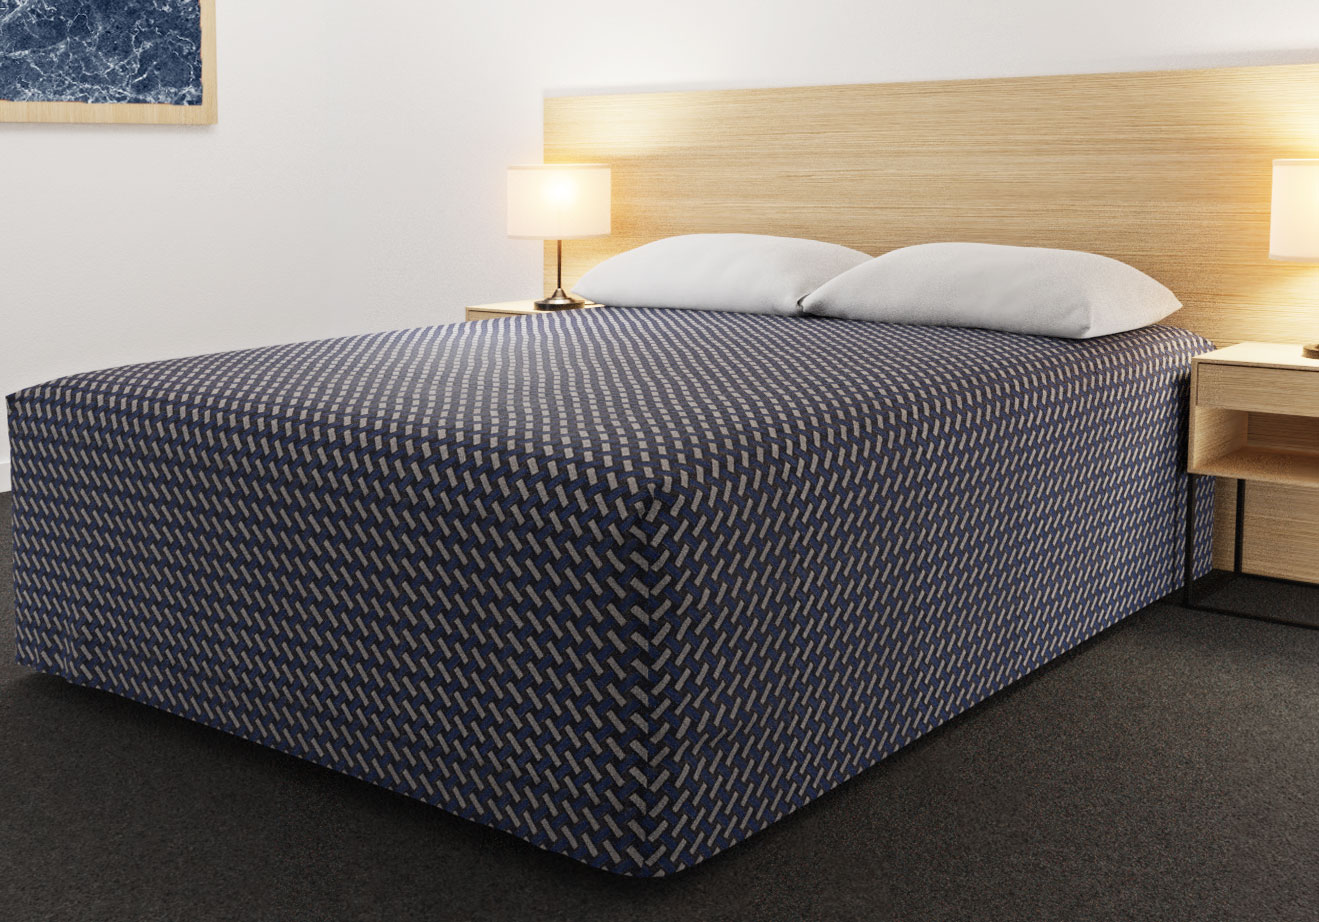 Practical Fitted Bed Cover - Full Drop - Flat Top Style - Basque Indigo